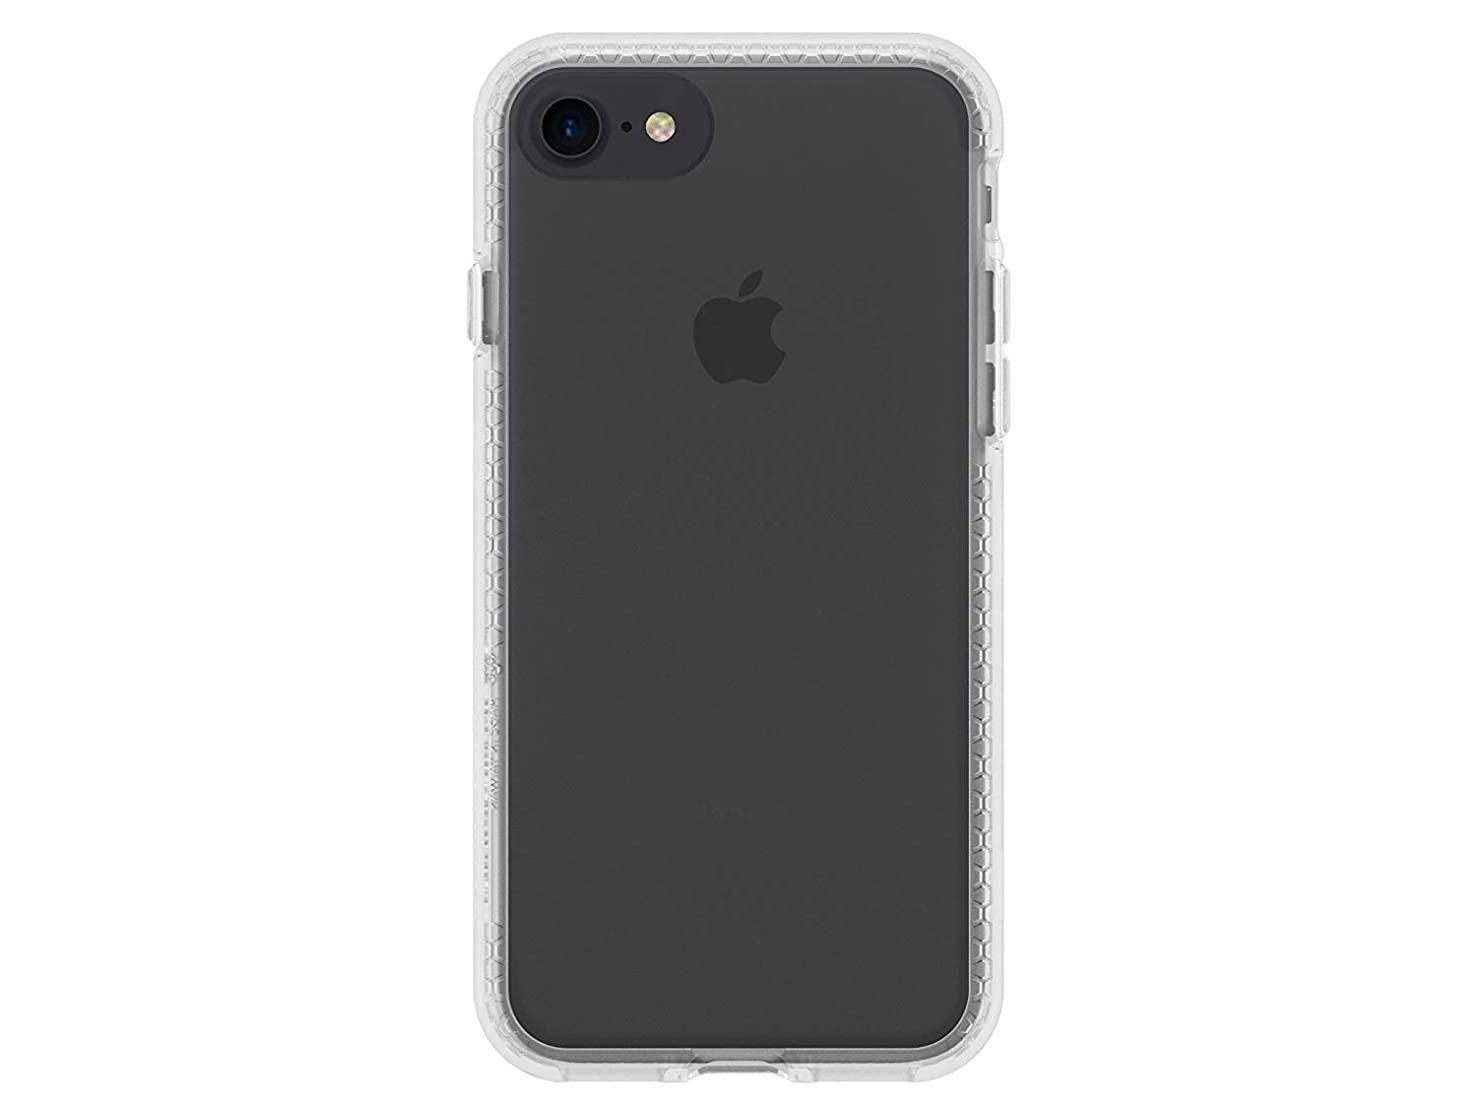 RhinoShield Case for iPhone 8 / iPhone 7 [NOT Plus] | [Clear PlayProof] | Heavy Duty Shock Absorbent [High Durability] Scratch Resistant. Ultra Thin. 11ft Drop Protection Rugged Cover - Full Clear